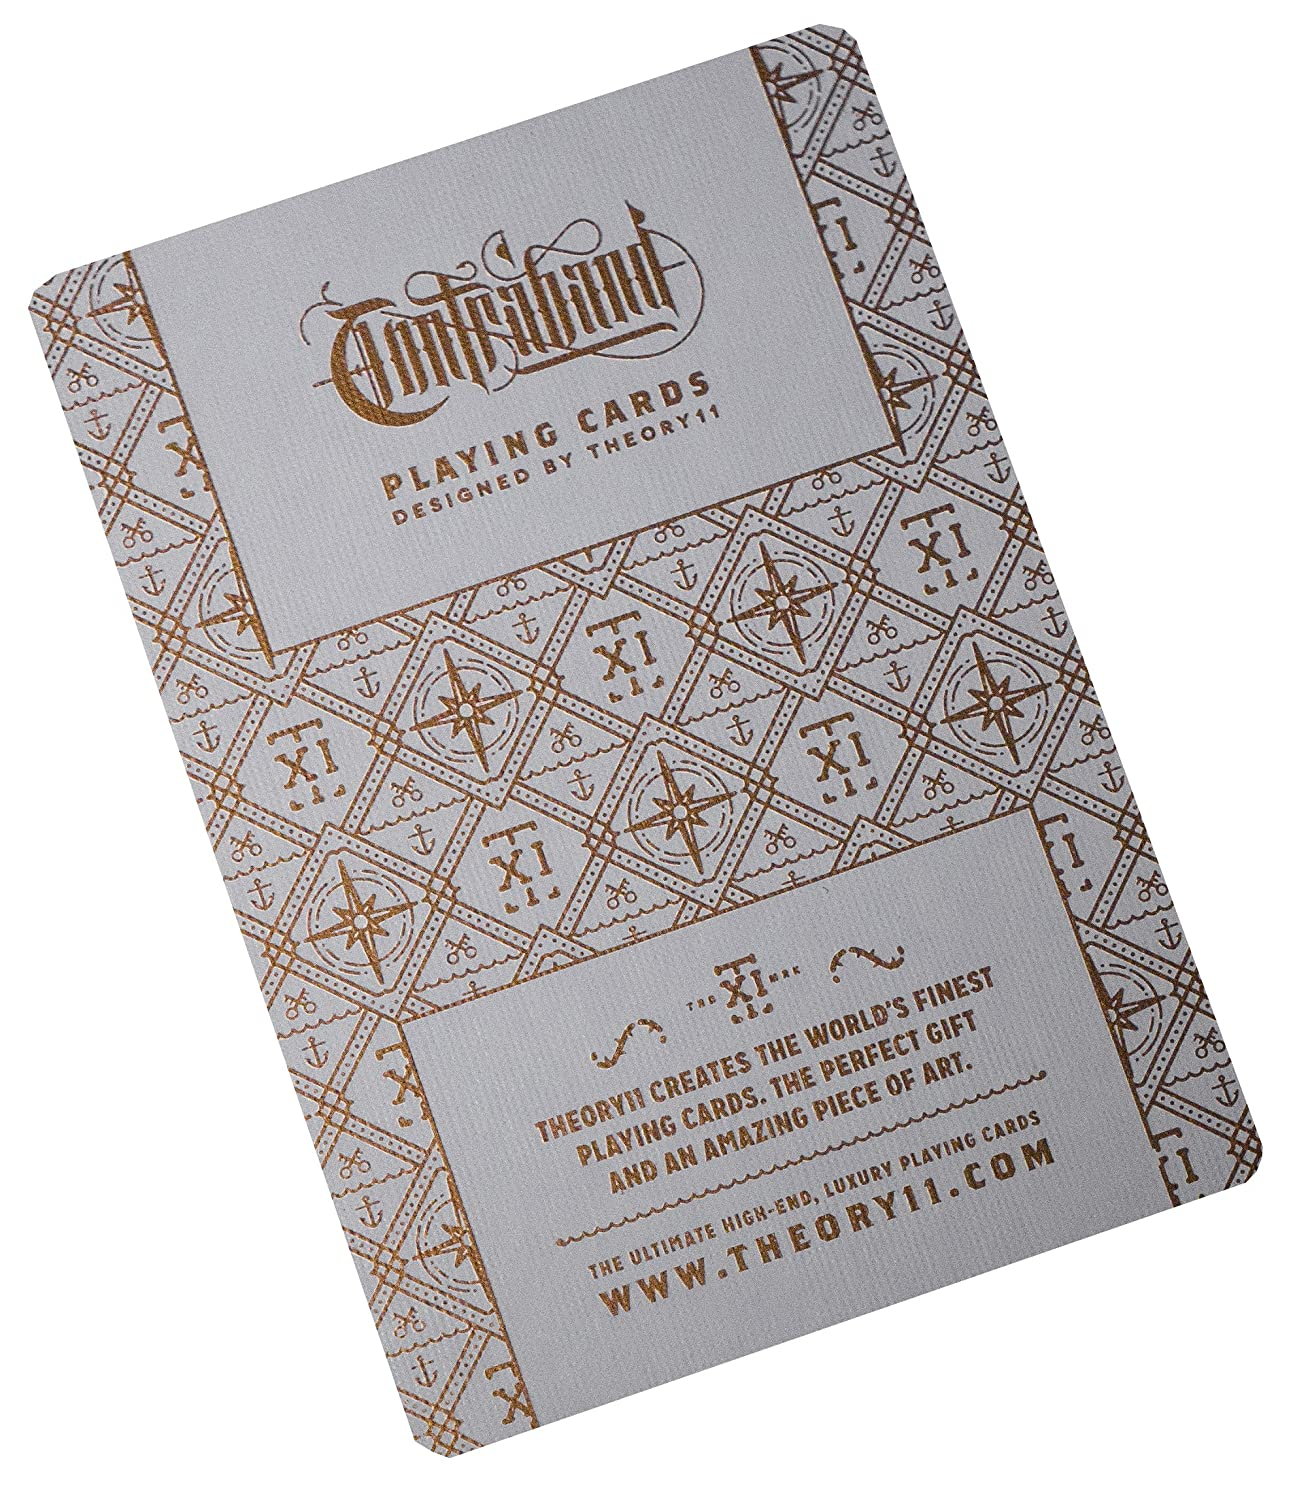 contraband playing cards sports outdoors